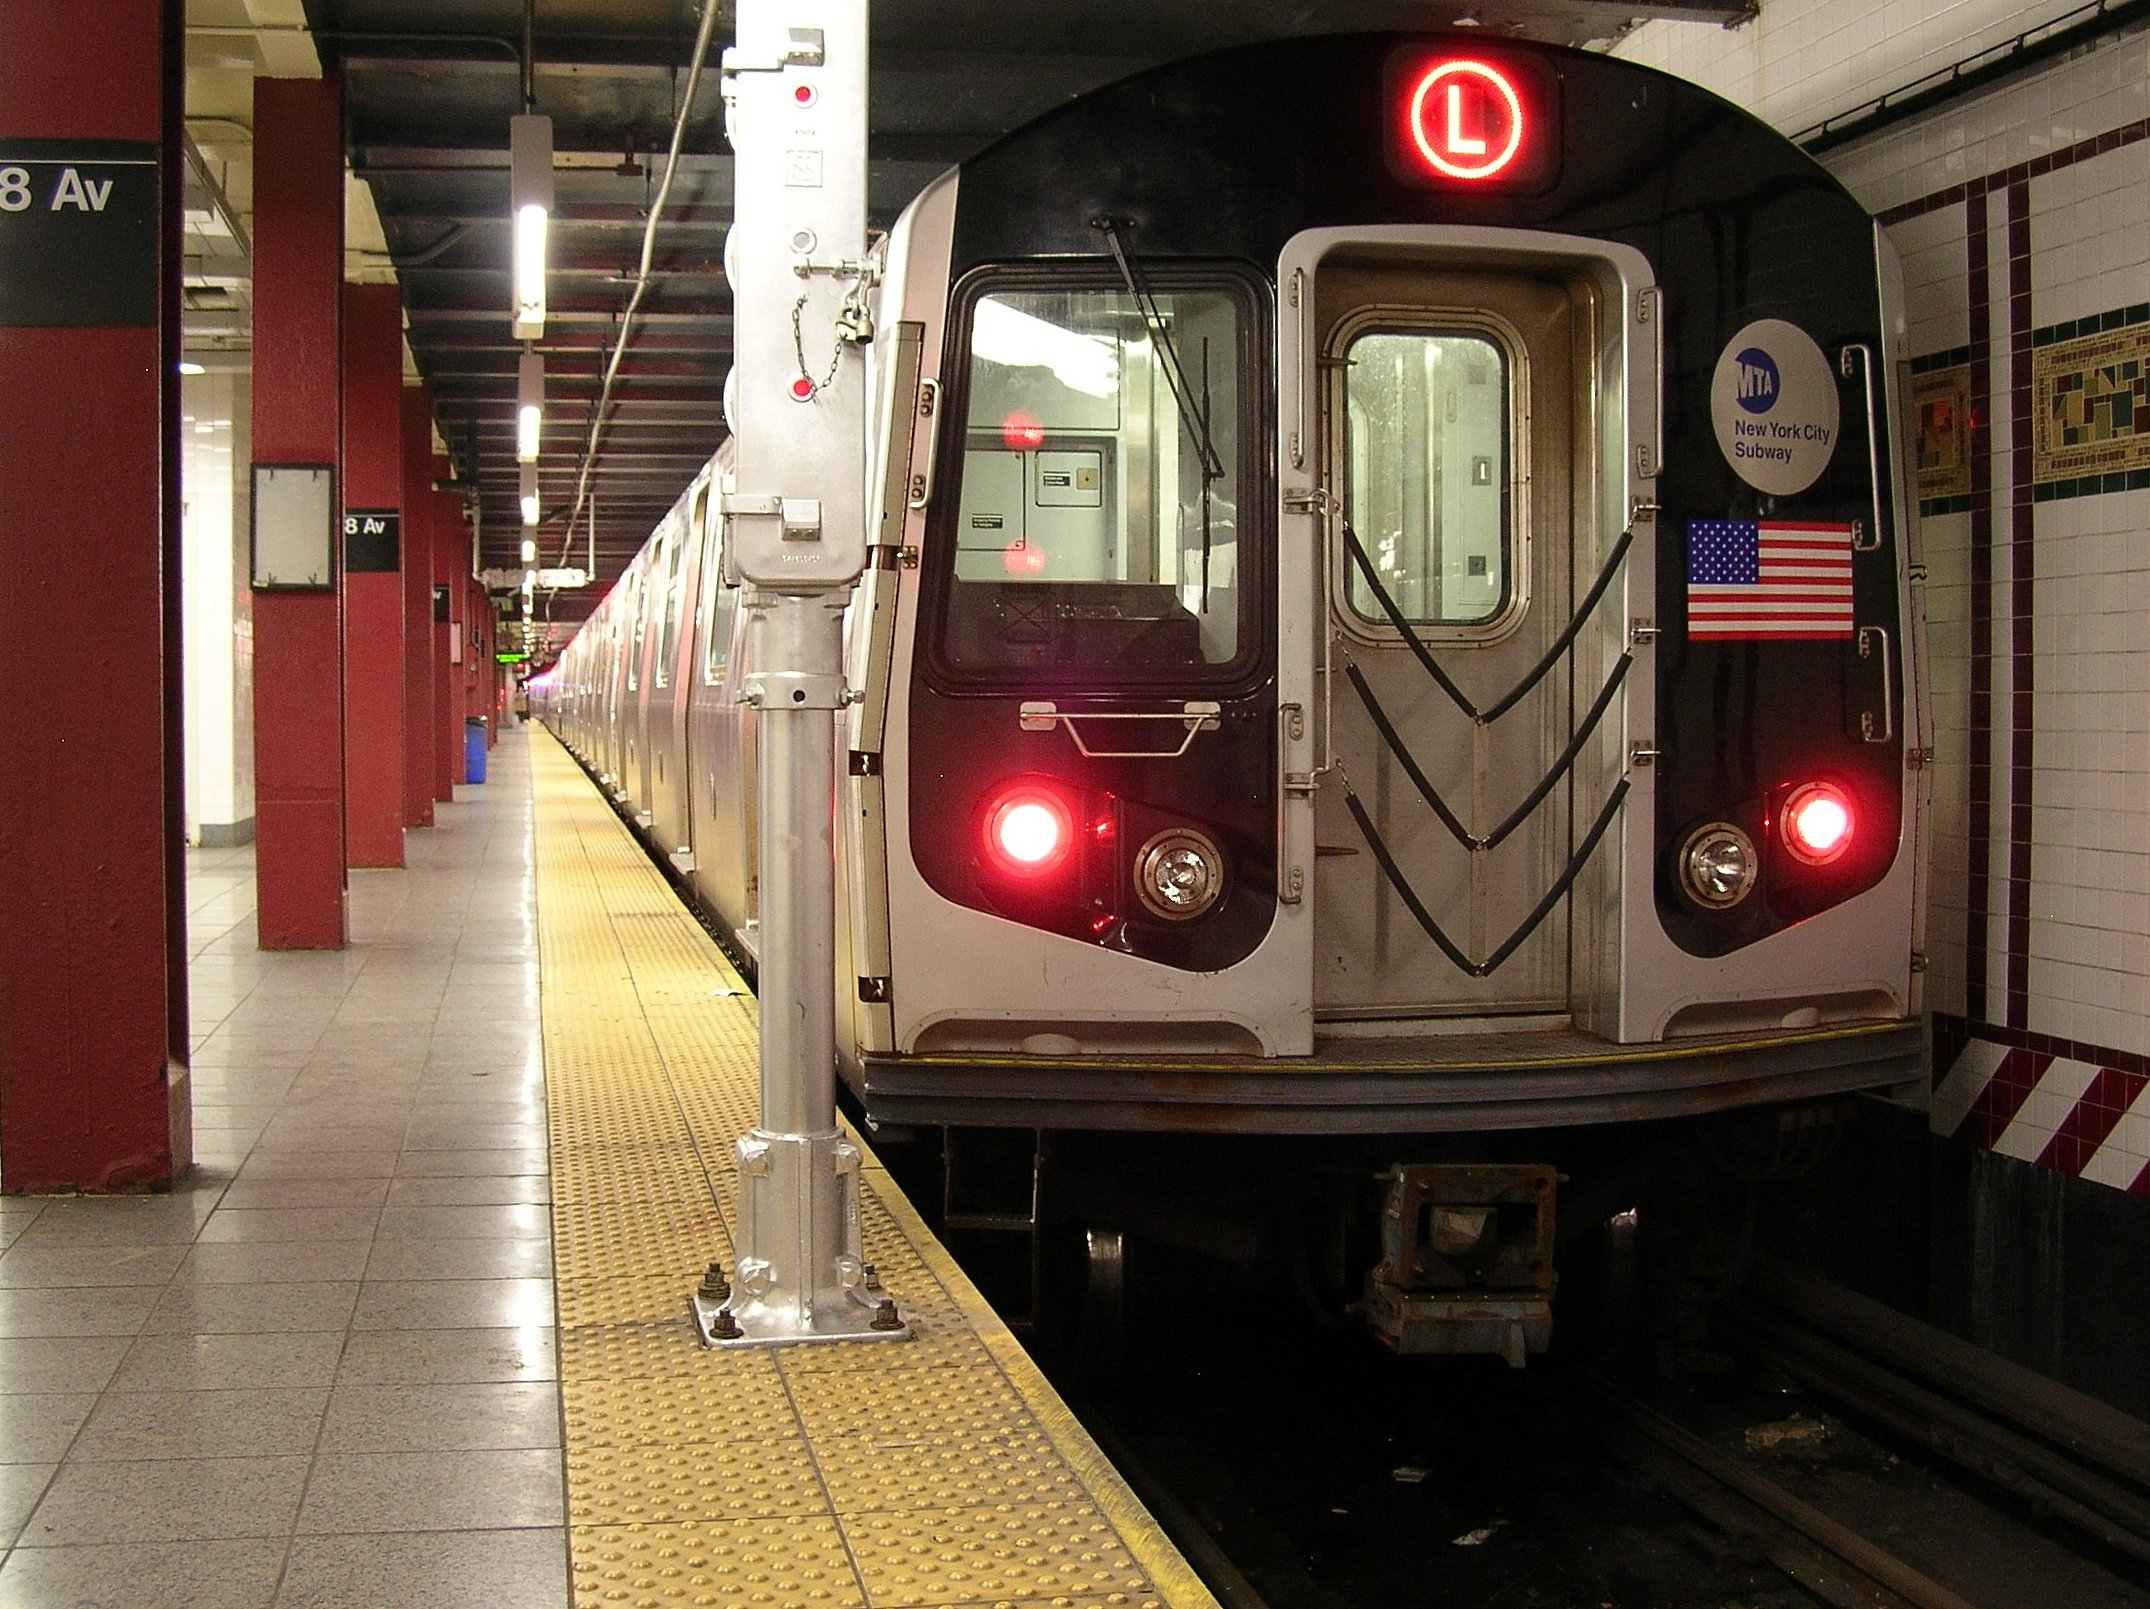 L Train at Eighth Avenue in Manhattan. Credit: Stephen Rees/Flickr